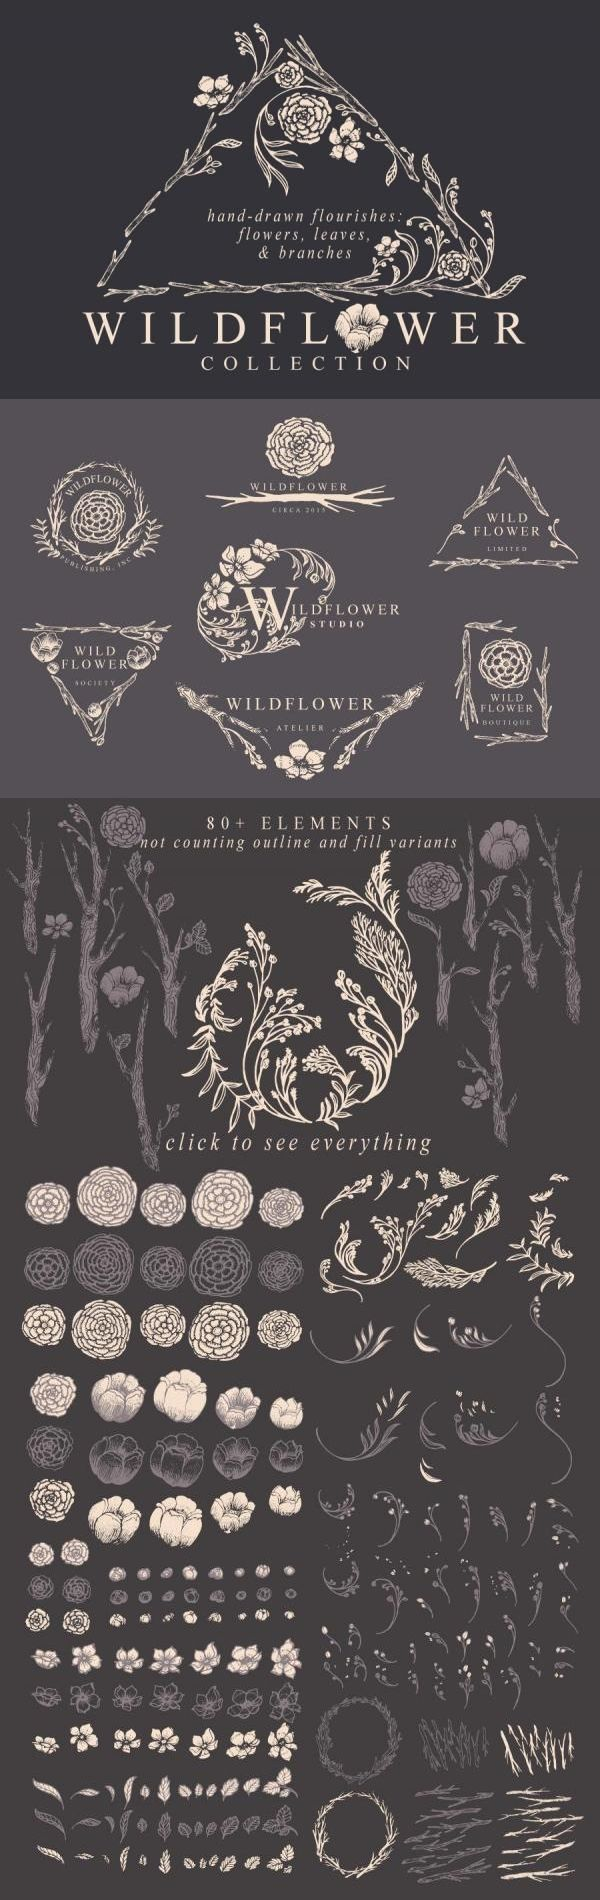 Hand-drawn floral flourishes: flowers, leaves, and branches. Wildflowers in a…